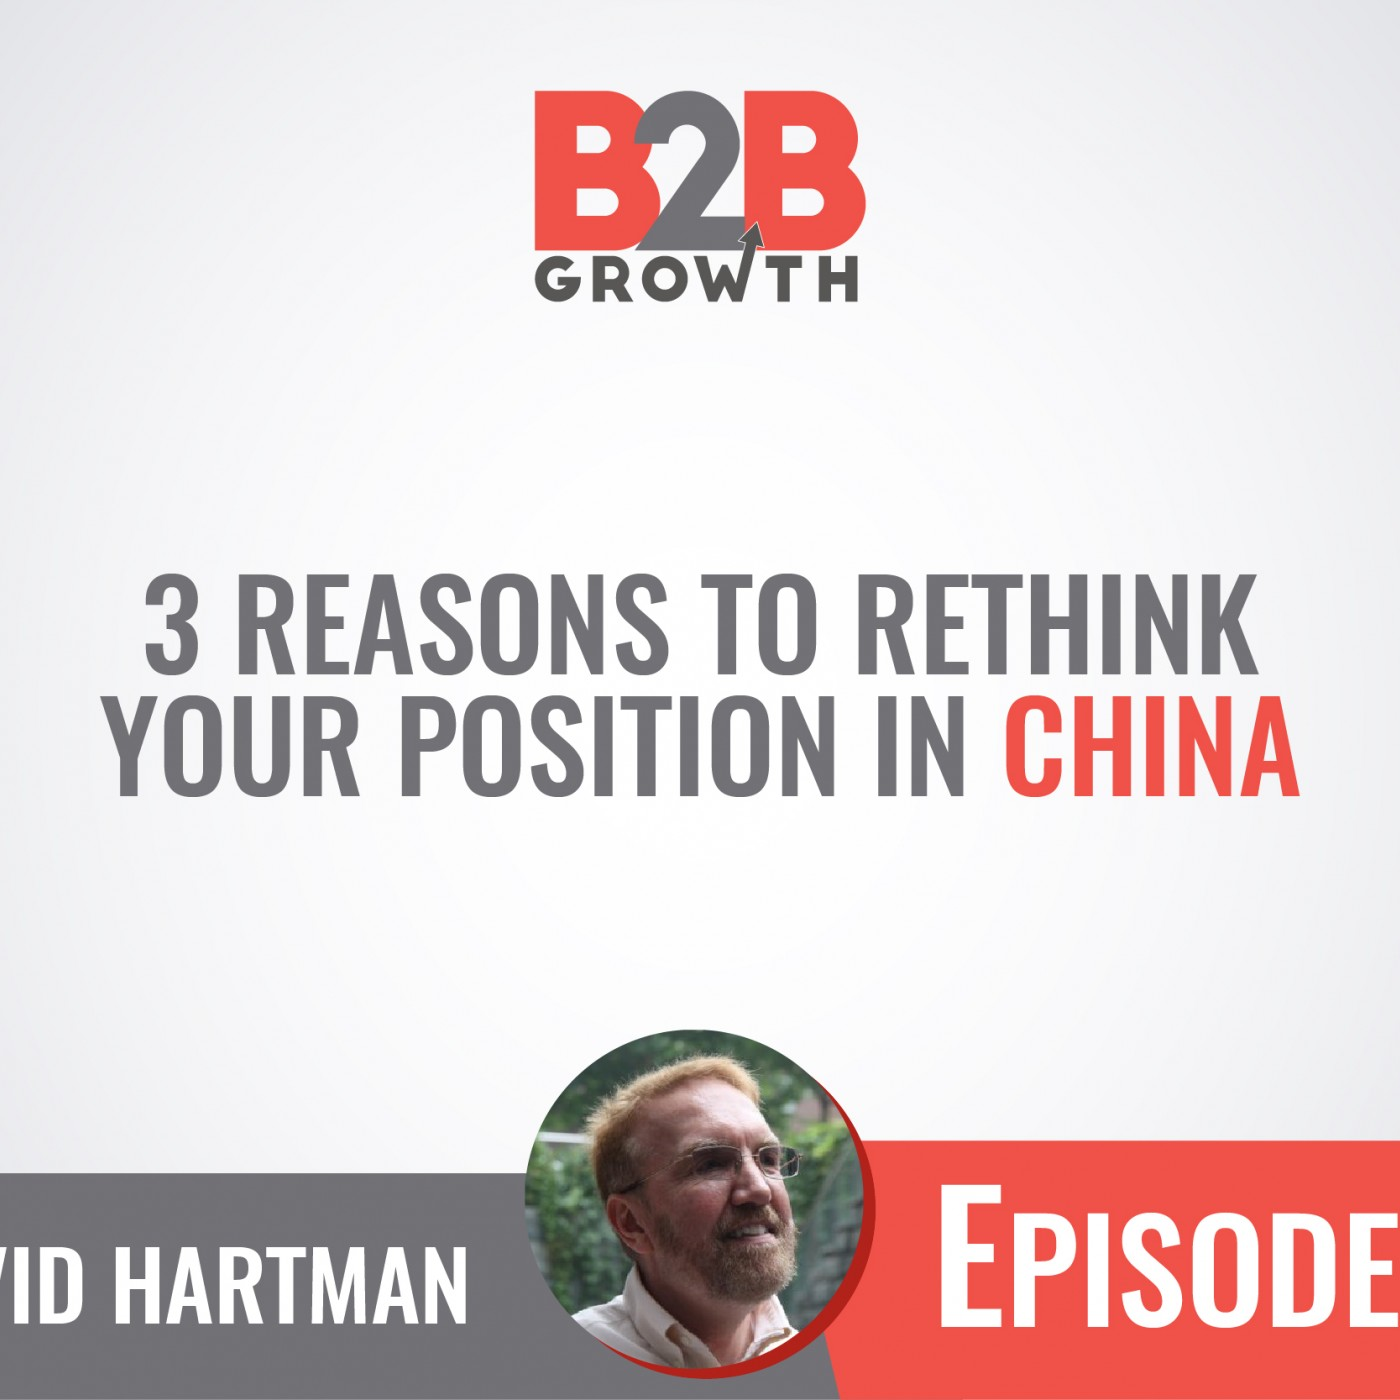 571: 3 Reasons to Rethink Your Position in China w/ David Hartman